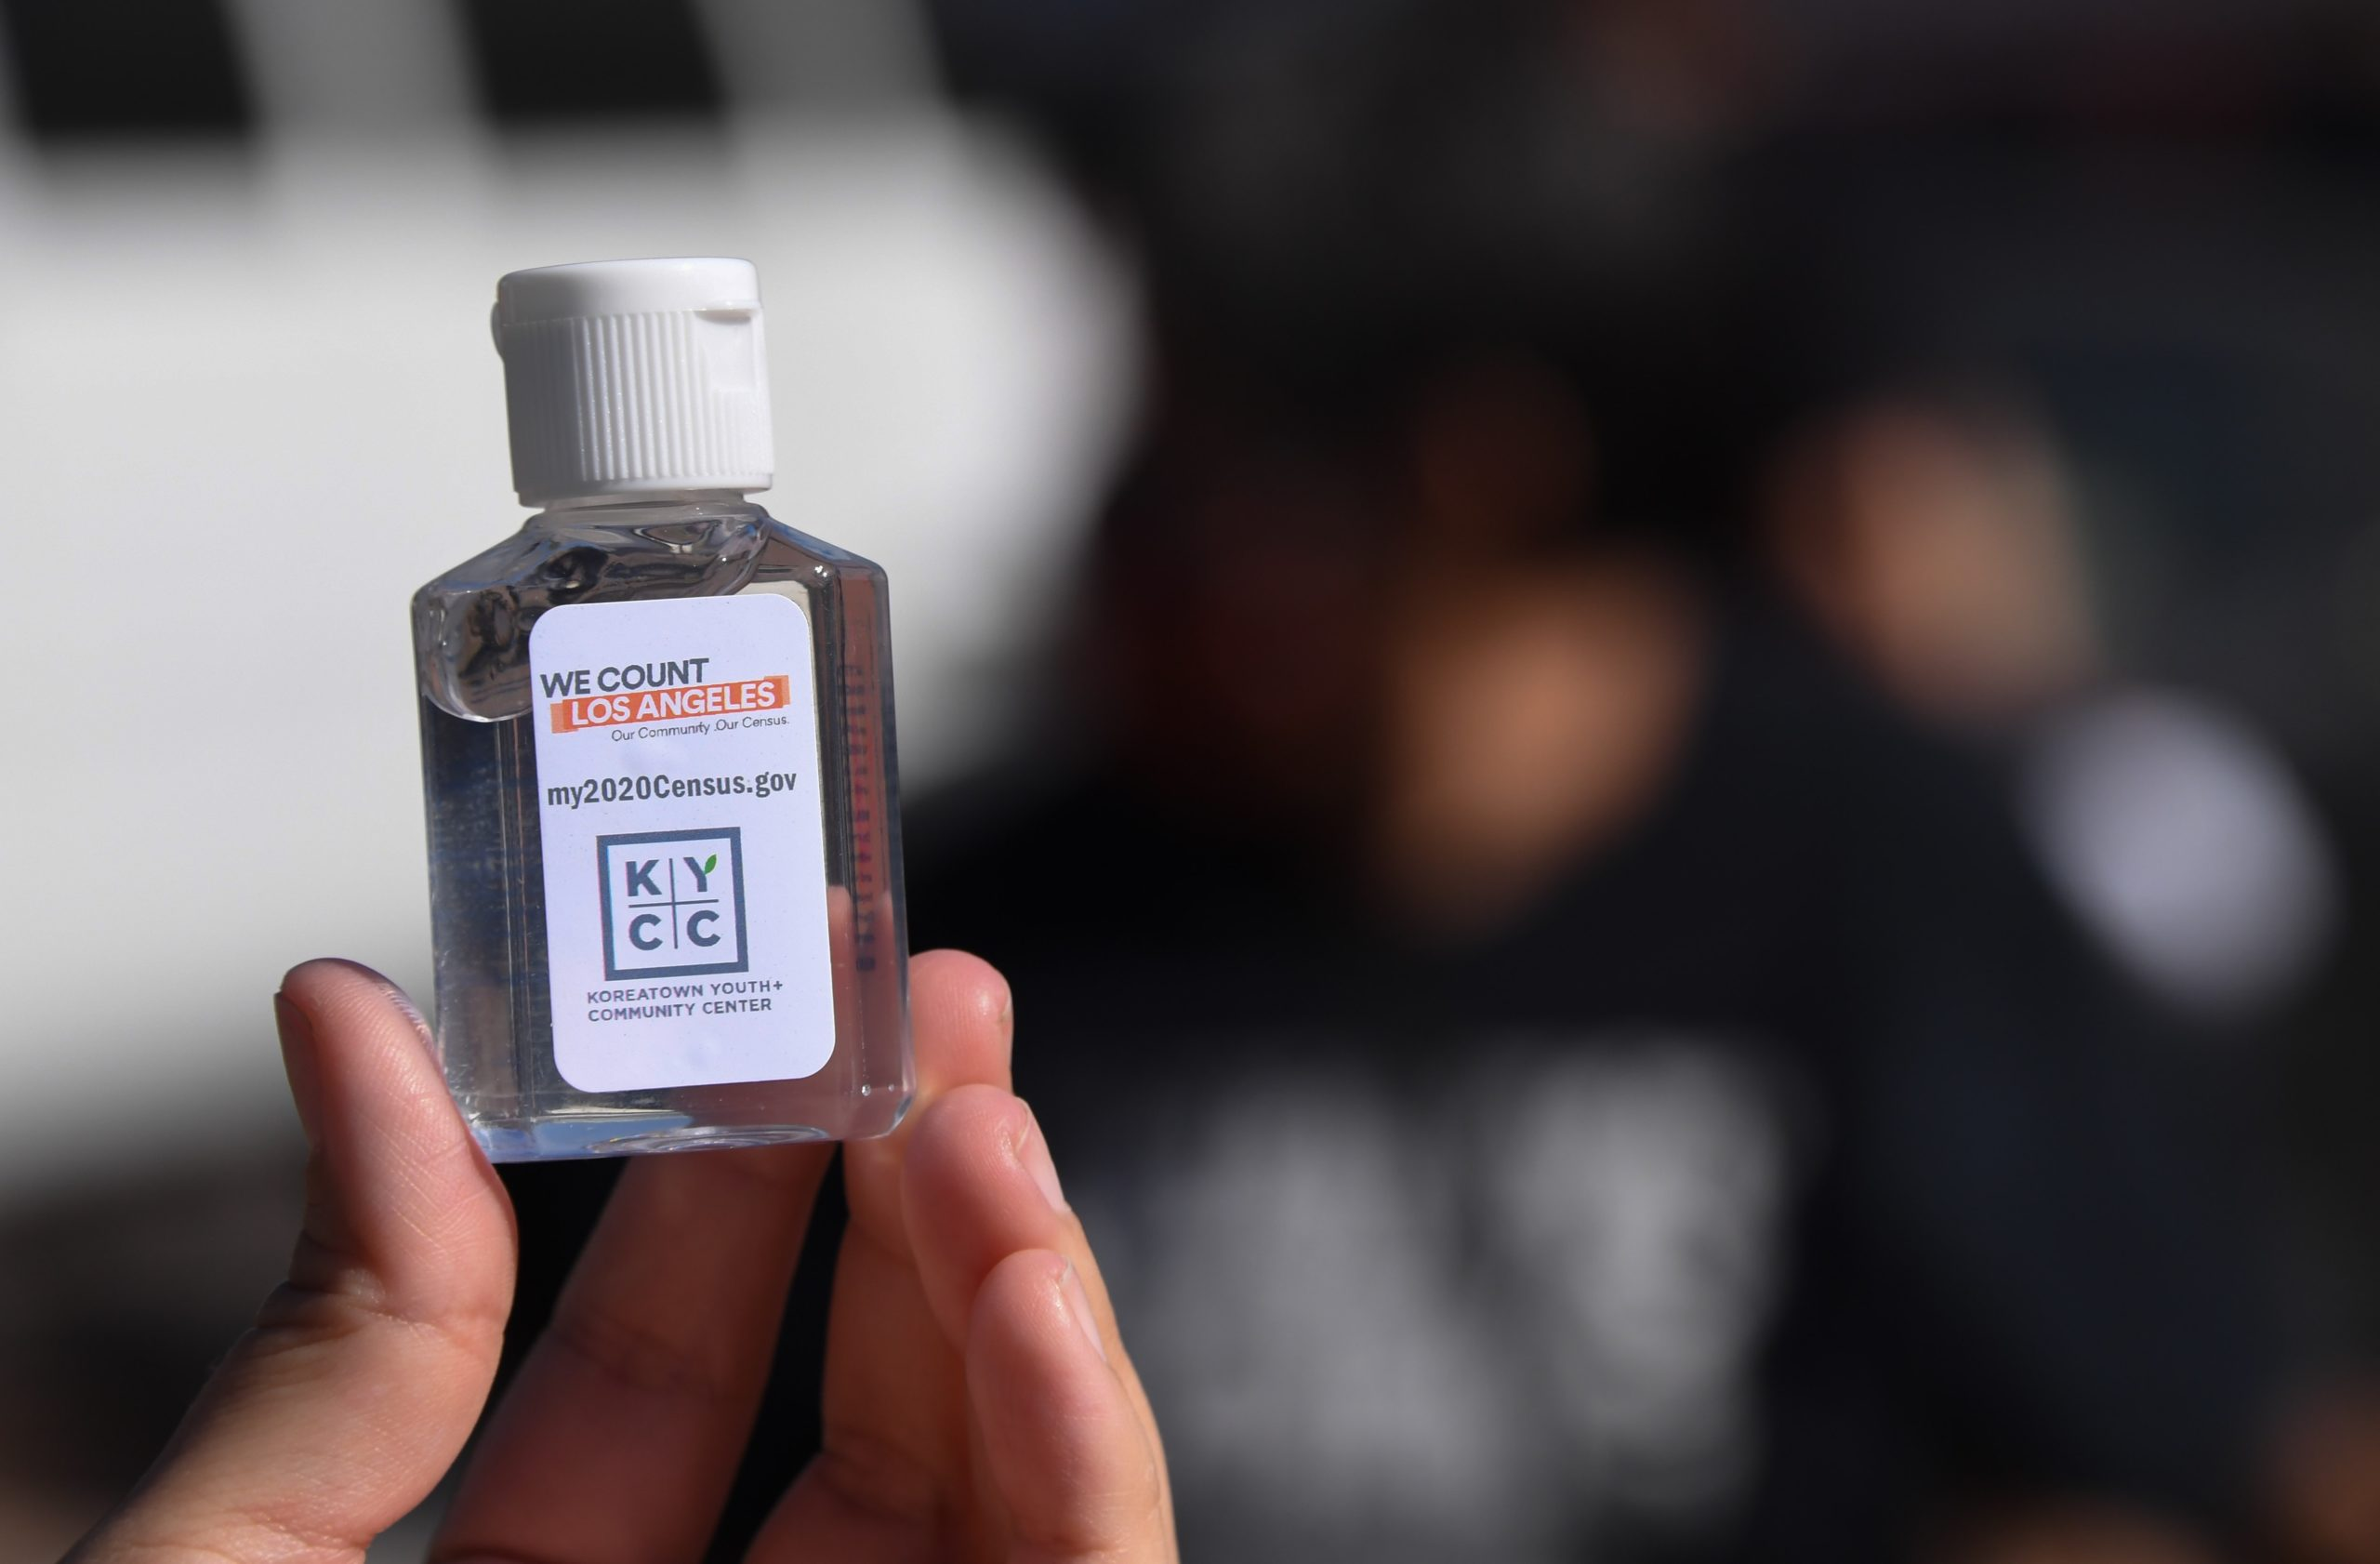 A volunteer displays a bottle of hand sanitzer labeled with information about the US Census which she is passing out to encourage people to complete the Census, at a food distribution bank for people facing economic hardship or food insecurity, in a church parking lot in Los Angeles, California, August 10, 2020 amid the COVID-19 pandemic. - The result of the Census, which the Census Bureau announced it would end one month early, on September 30, directly affects the amount of funding a community receives for services including public schools, hospitals and fire departments. (Photo by Robyn Beck / AFP) (Photo by ROBYN BECK/AFP via Getty Images)